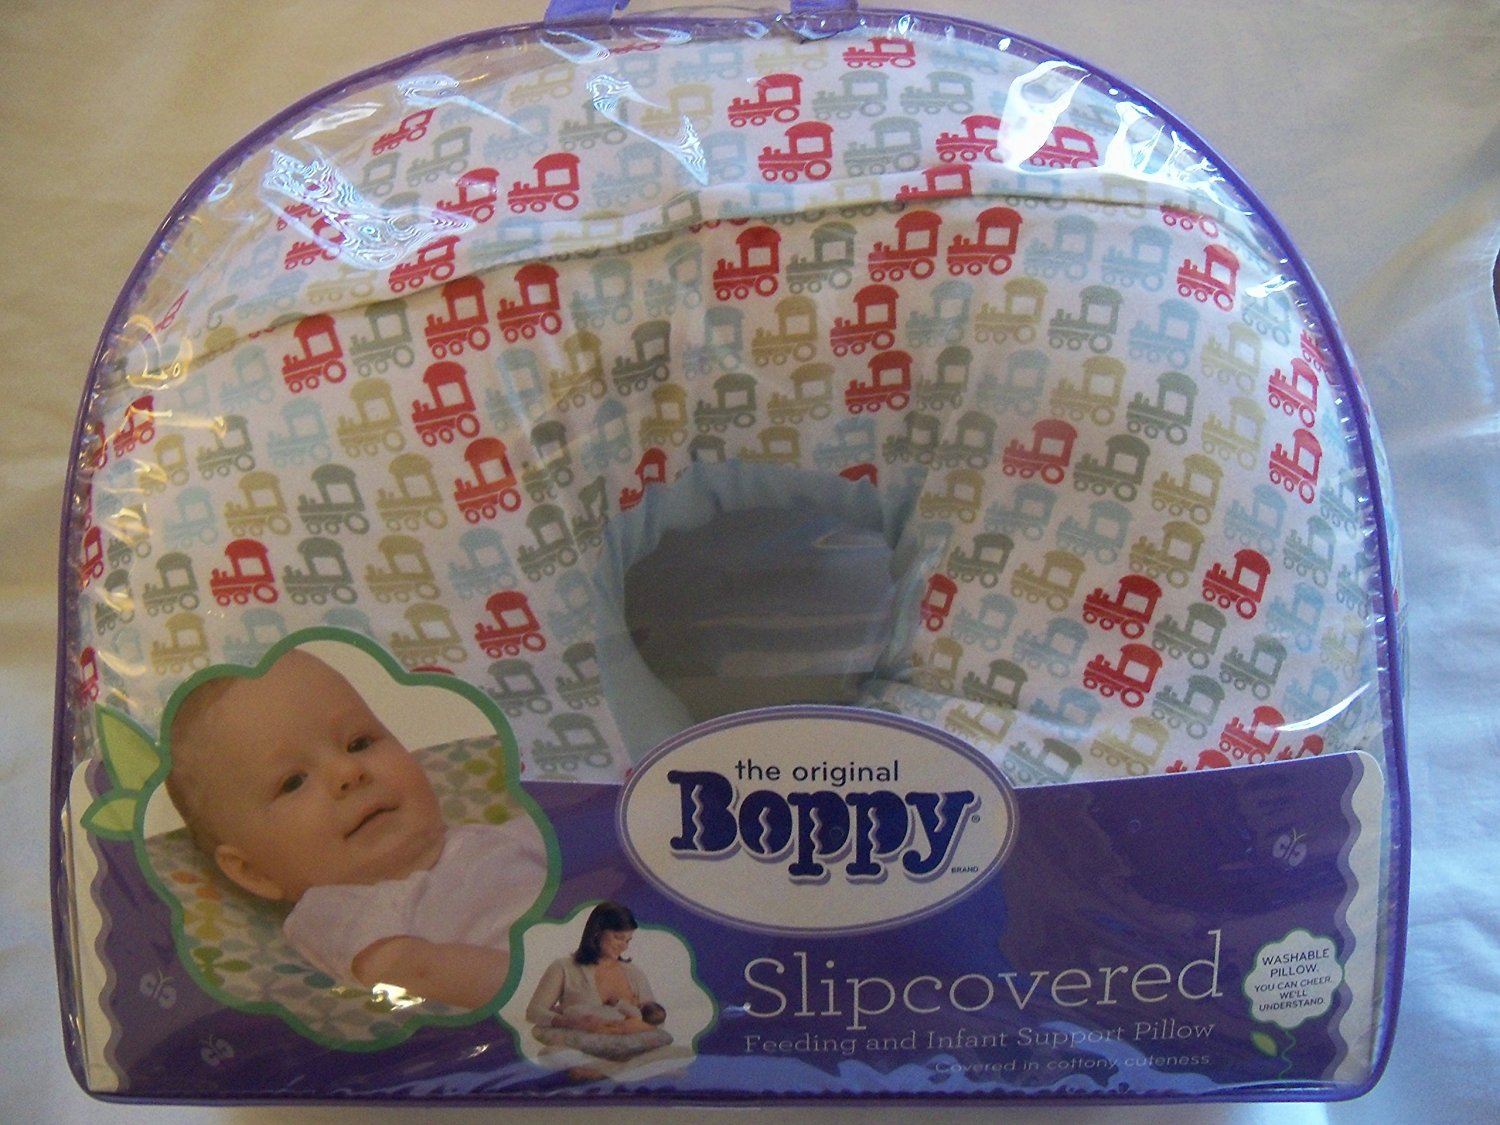 Boppy Slipcovered Feeding and Infant Support Pillow, Choo Choo Trains